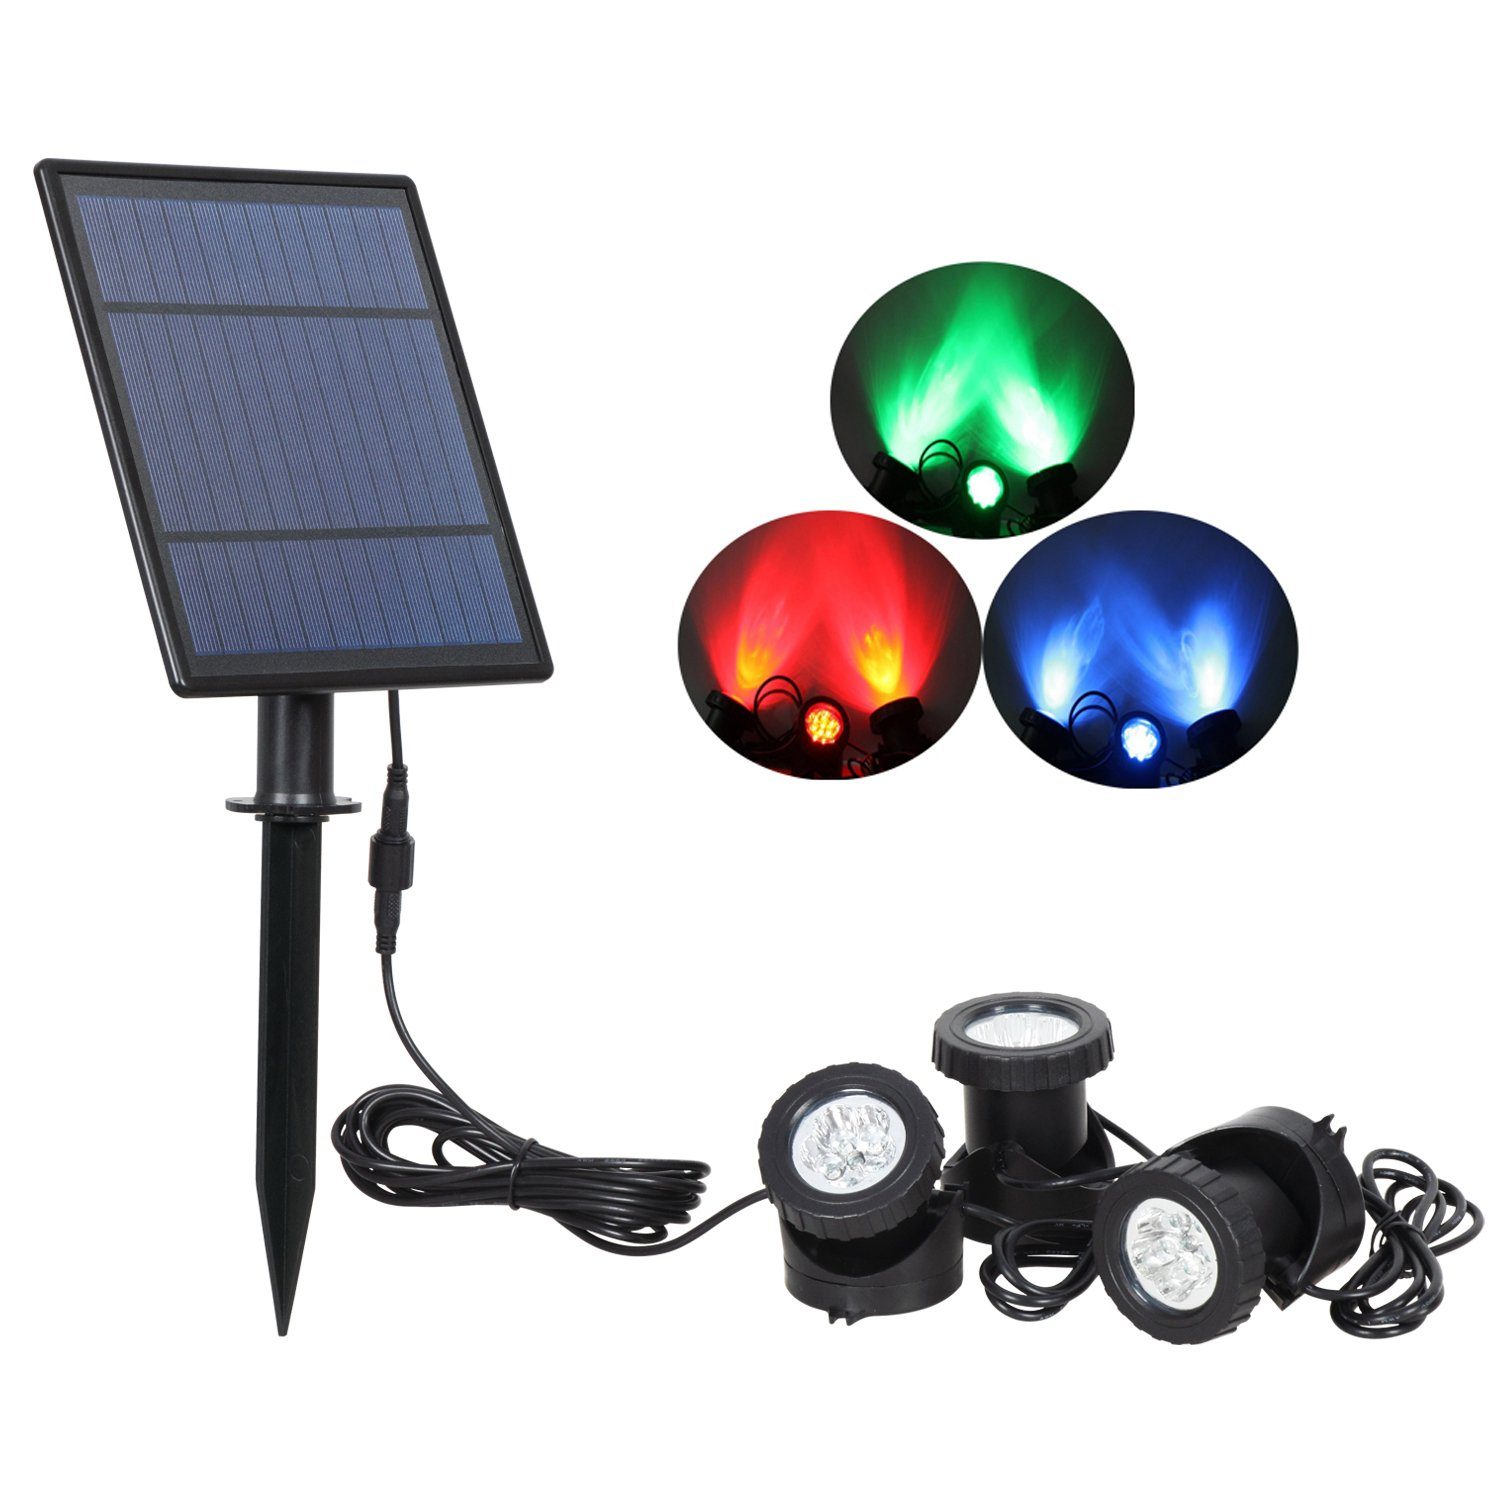 T Sun Solar Underwater Pond Lights, Waterproof Submersible Lamps Projector Light,